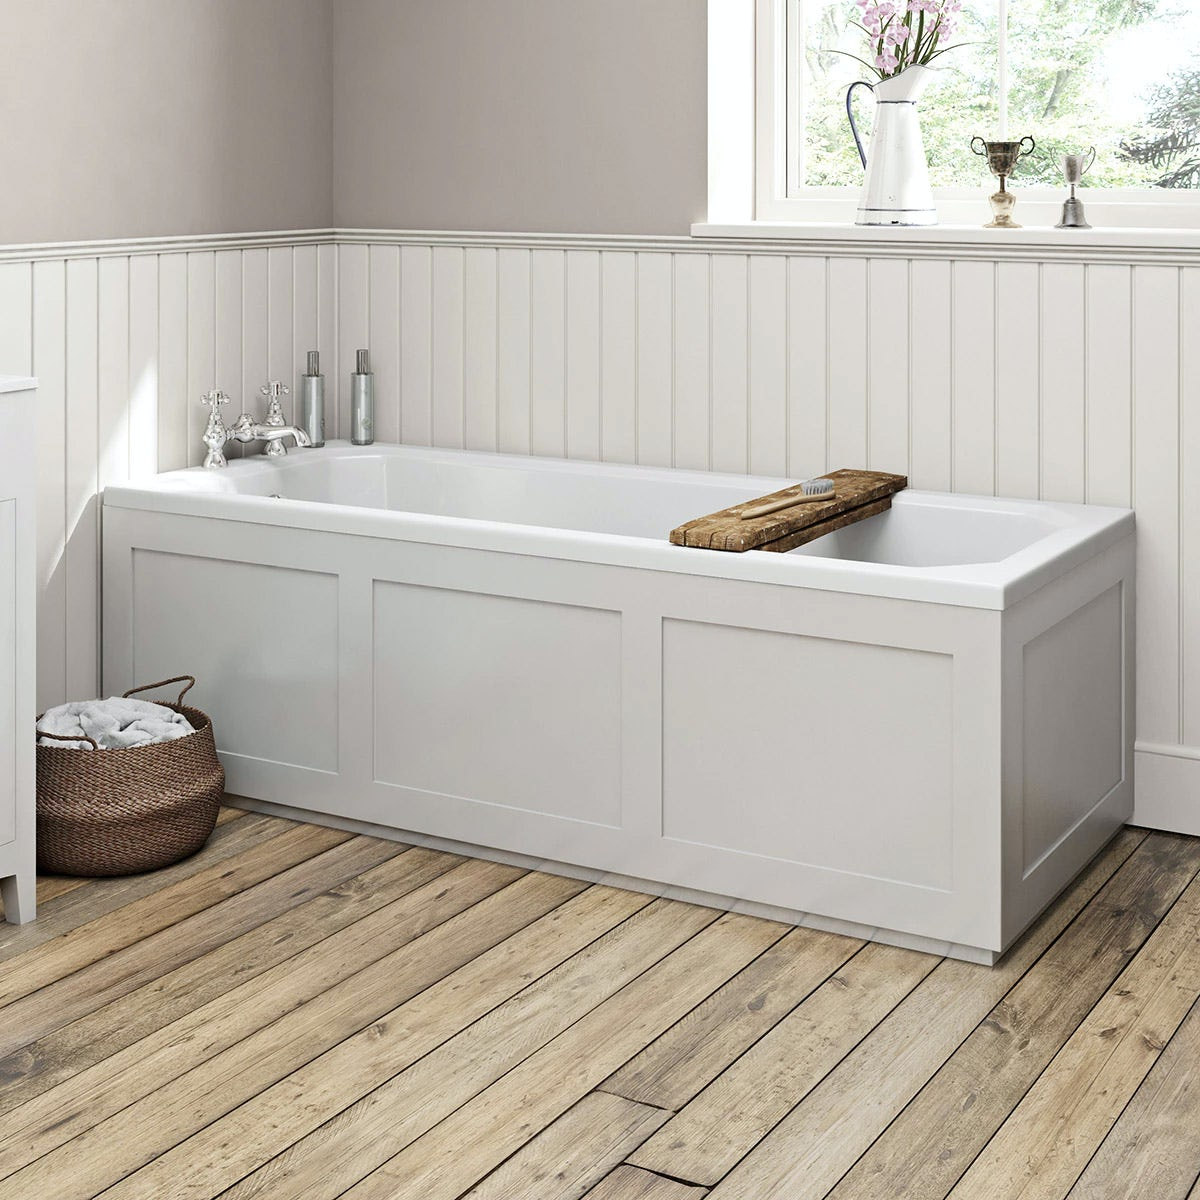 wooden bath panels